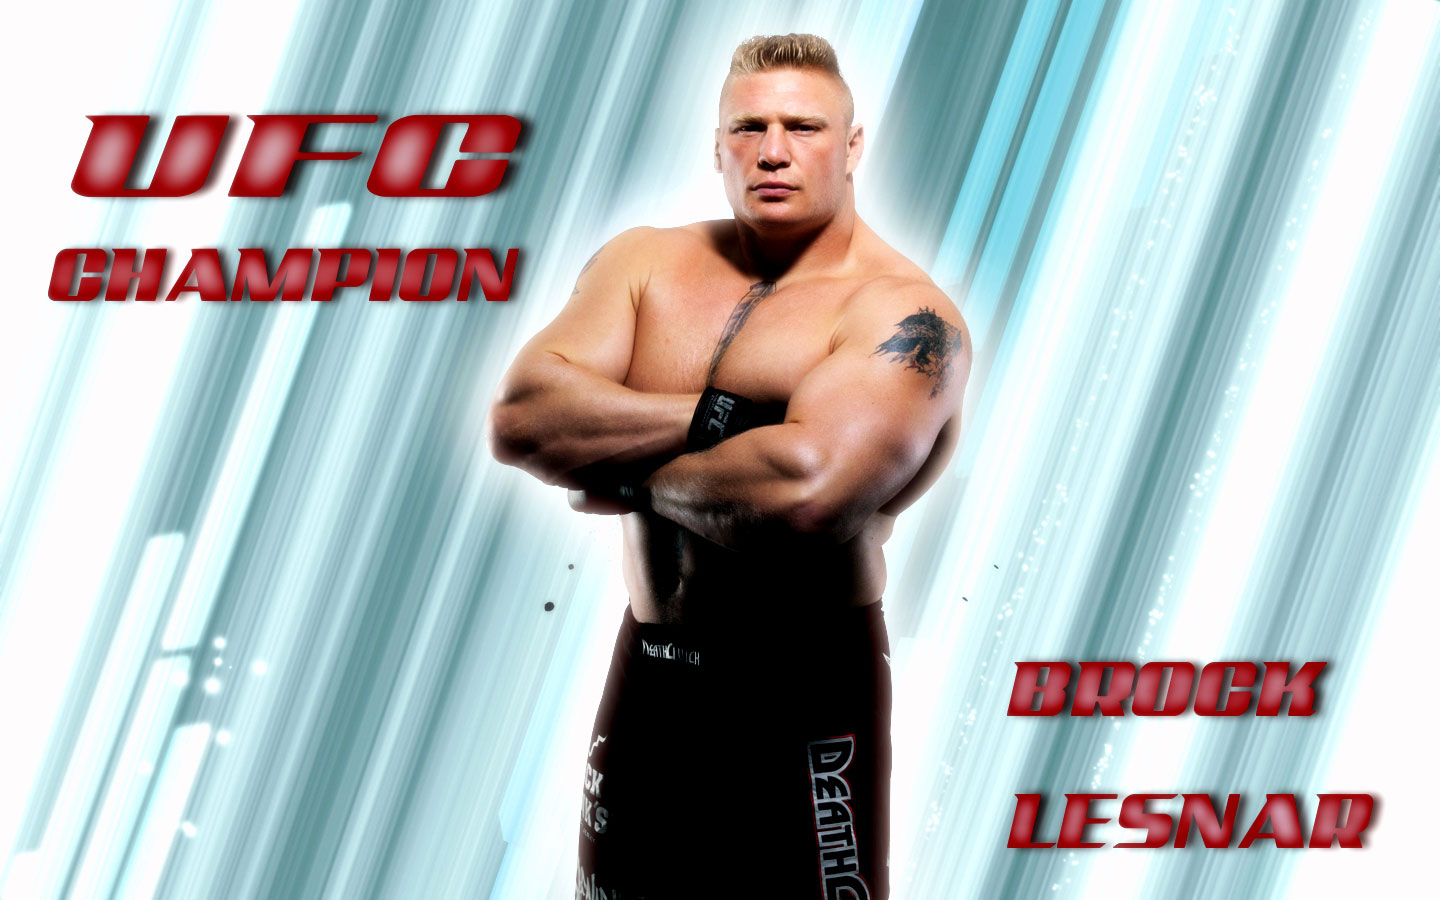 Name Brock Lesnar Wallpapers Total Images 50 Resolution N A Genre Wwe Superstar English TV Hollywood Celebrities